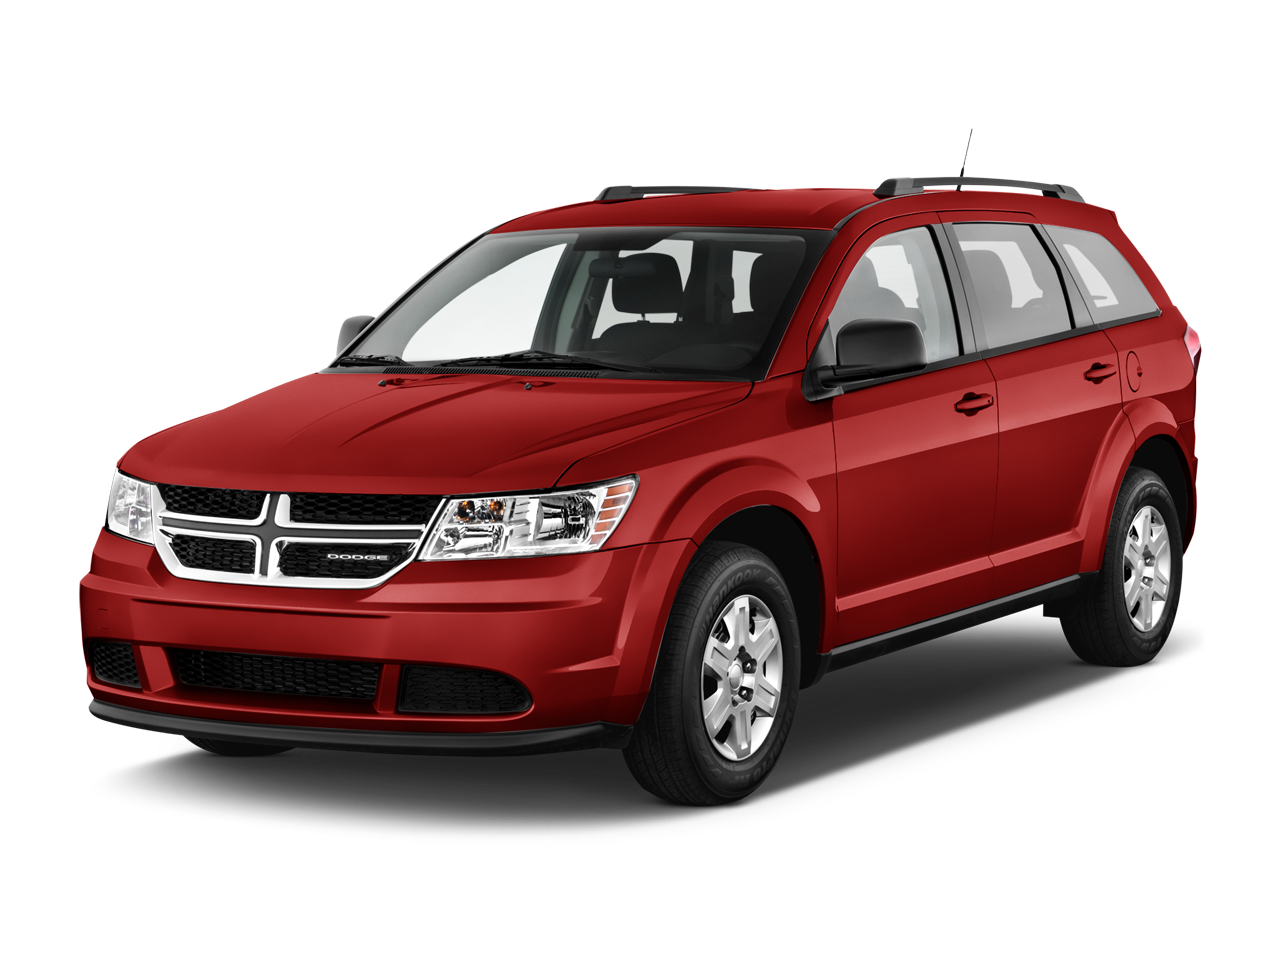 new 2017 dodge journey sxt near boone ia pat clemons inc. Black Bedroom Furniture Sets. Home Design Ideas